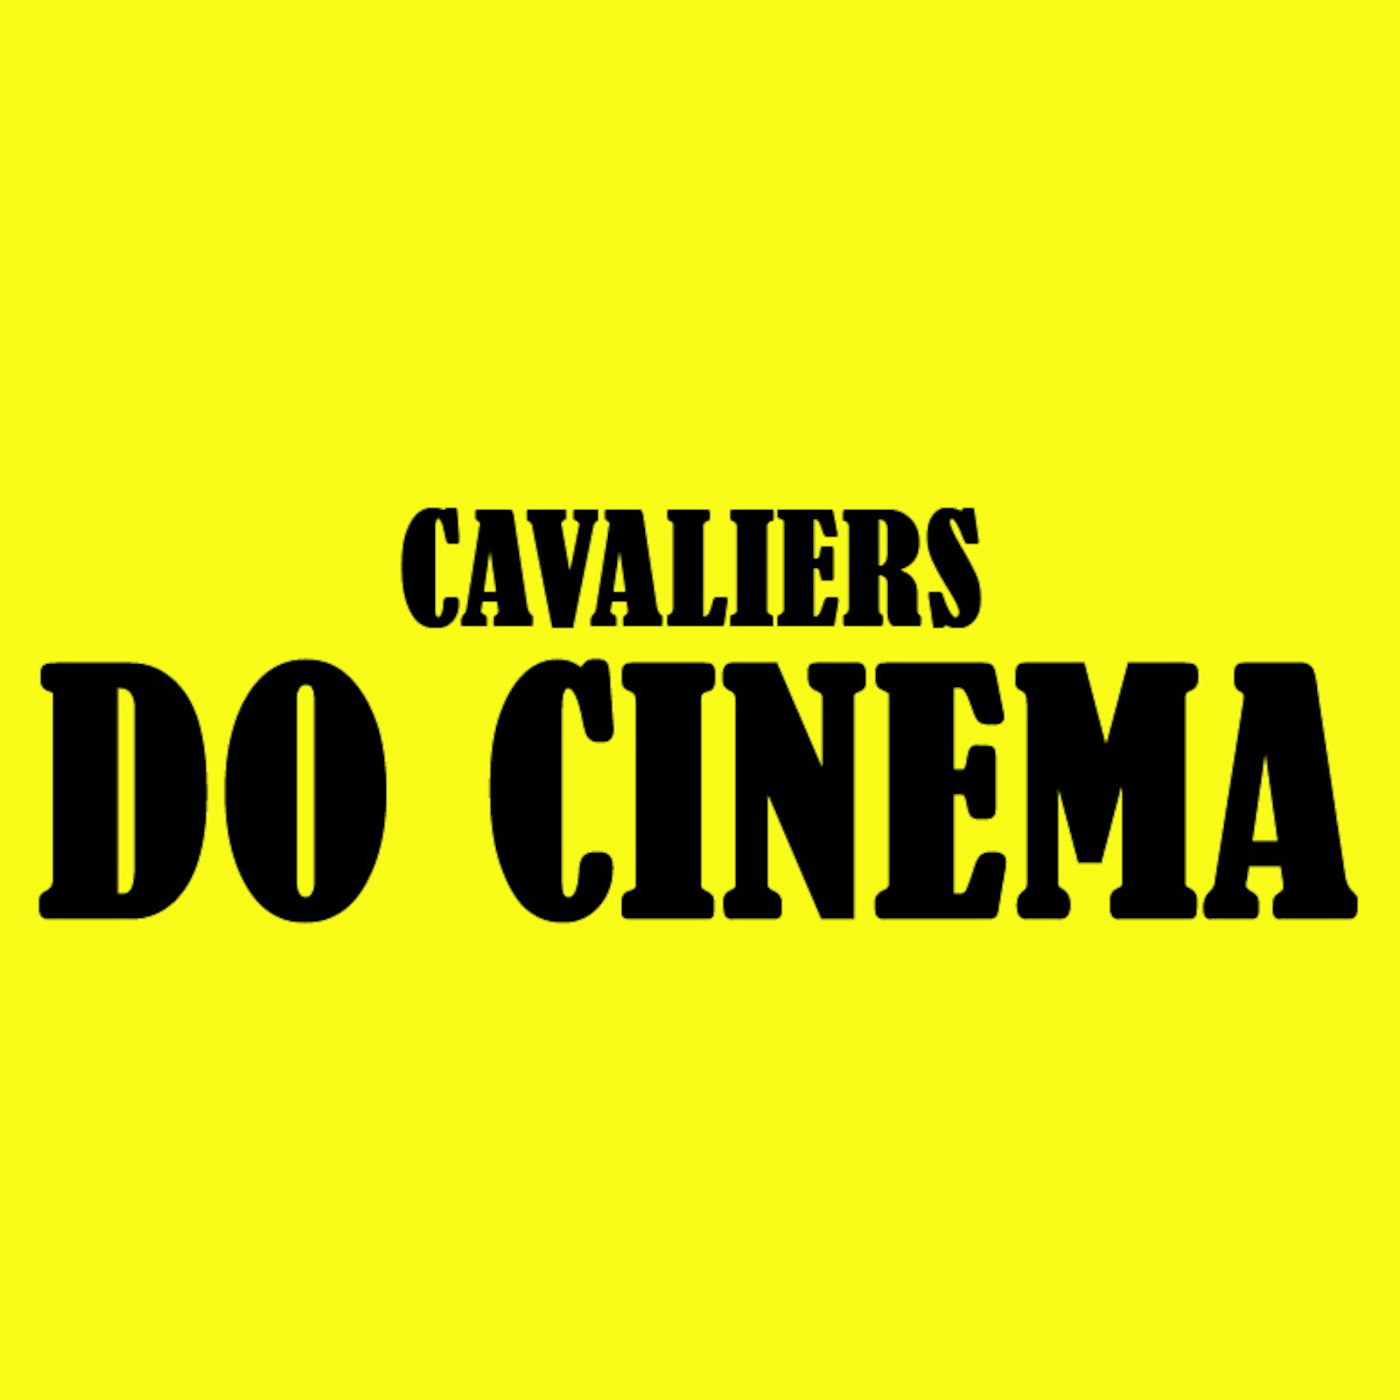 Cavaliers Do Cinema